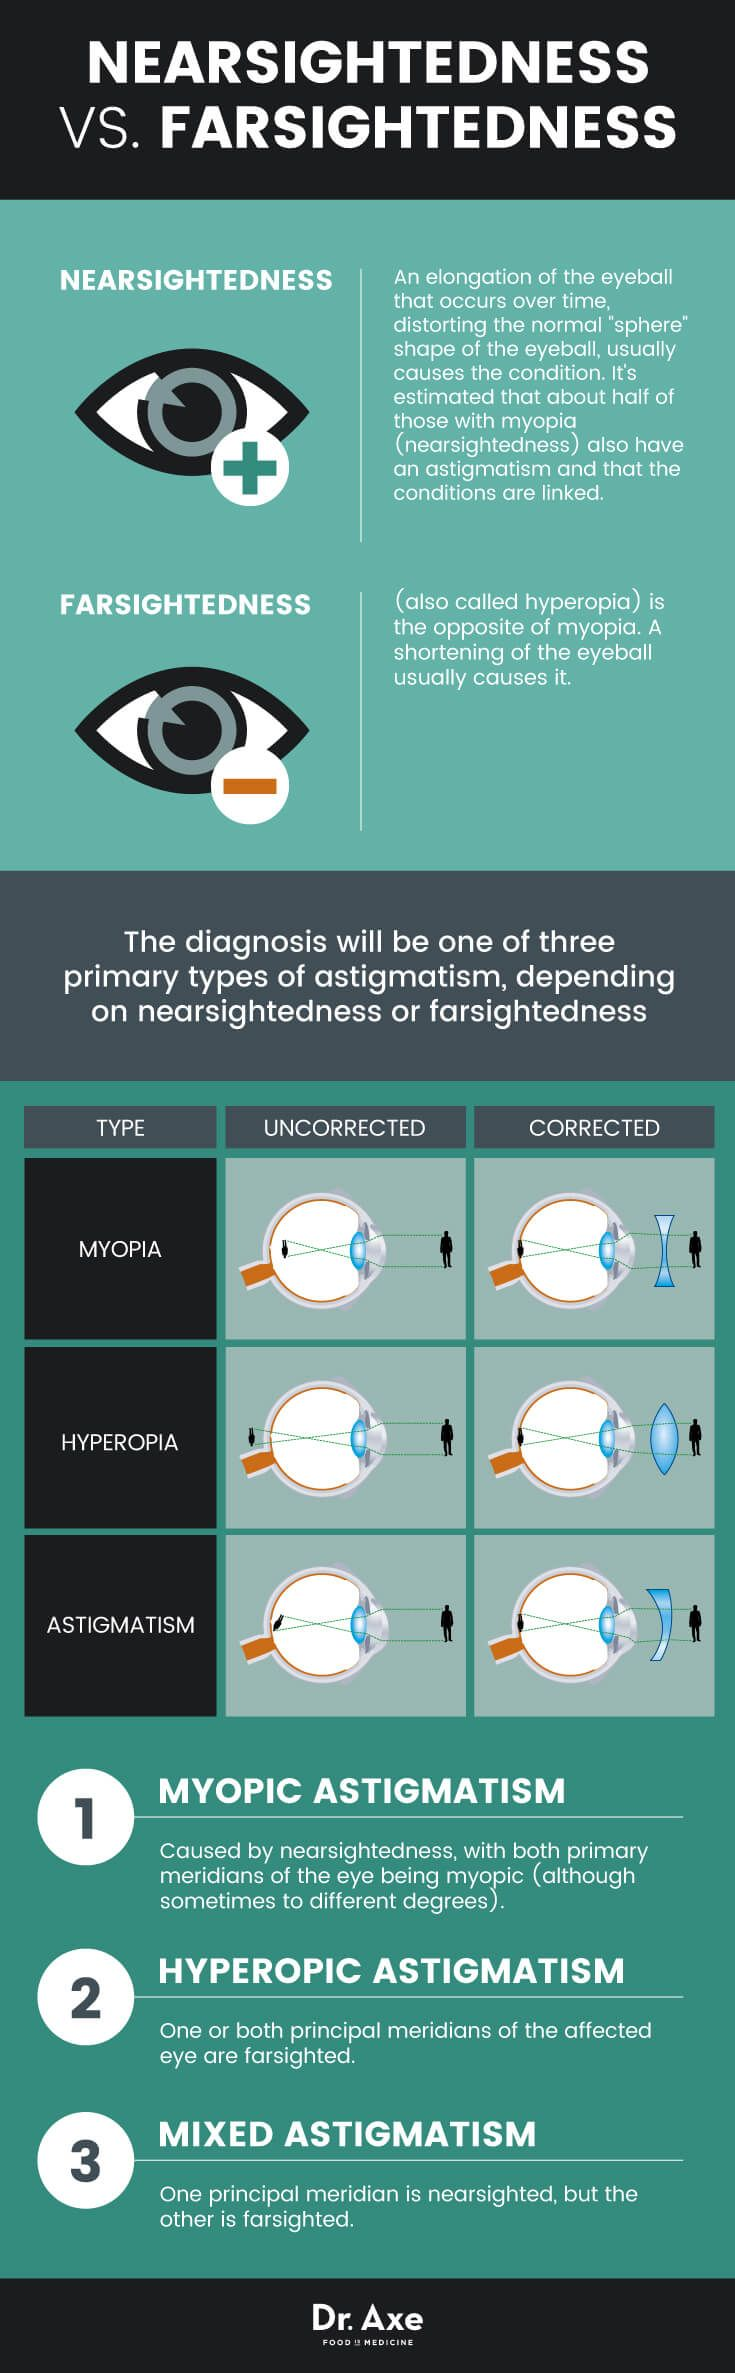 What Is Astigmatism? Symptoms, Causes & Remedies - Dr. Axe